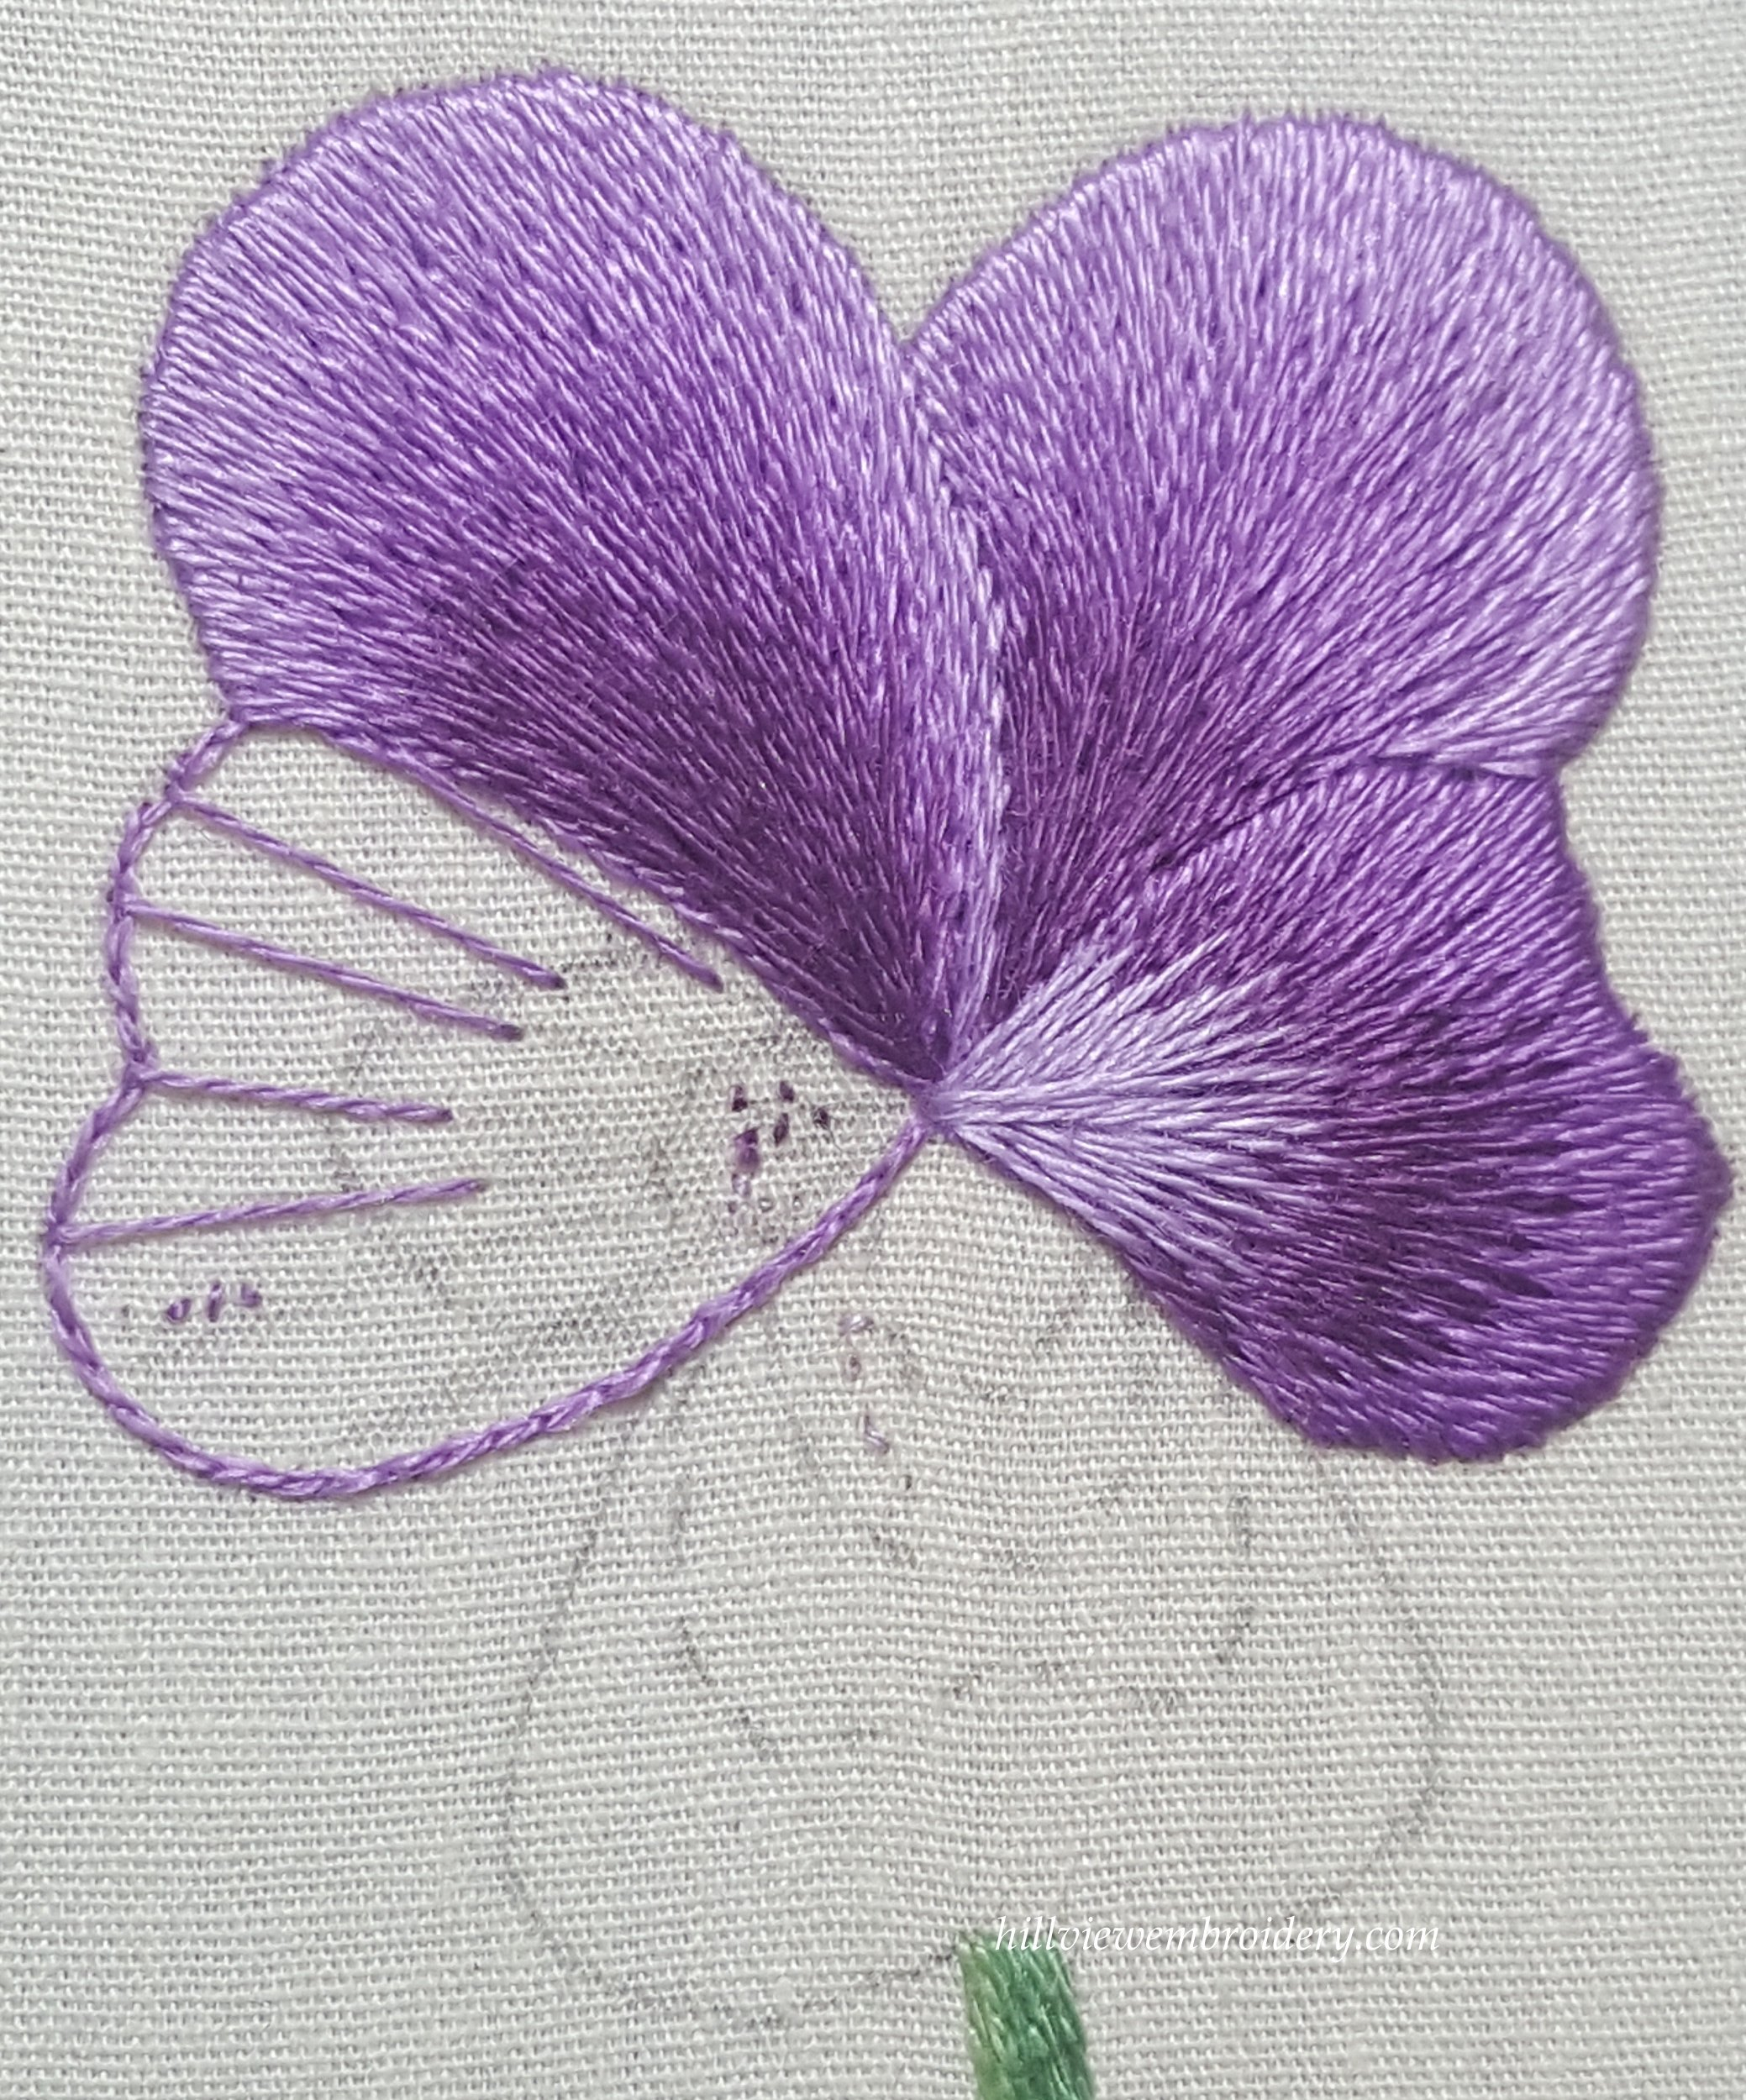 The pansy is starting to blossom hillview embroidery